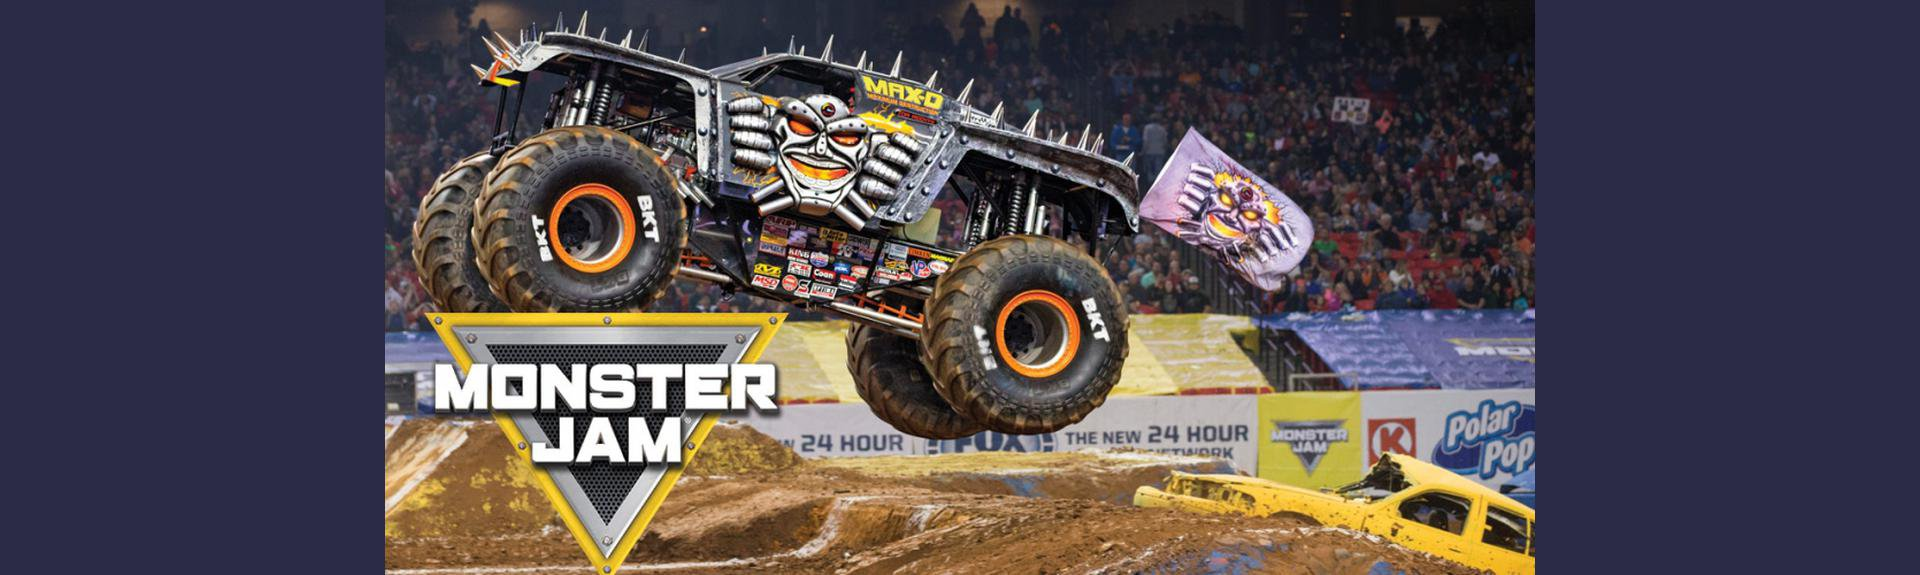 Monster Jam | Johannesburg | Things to do With Kids